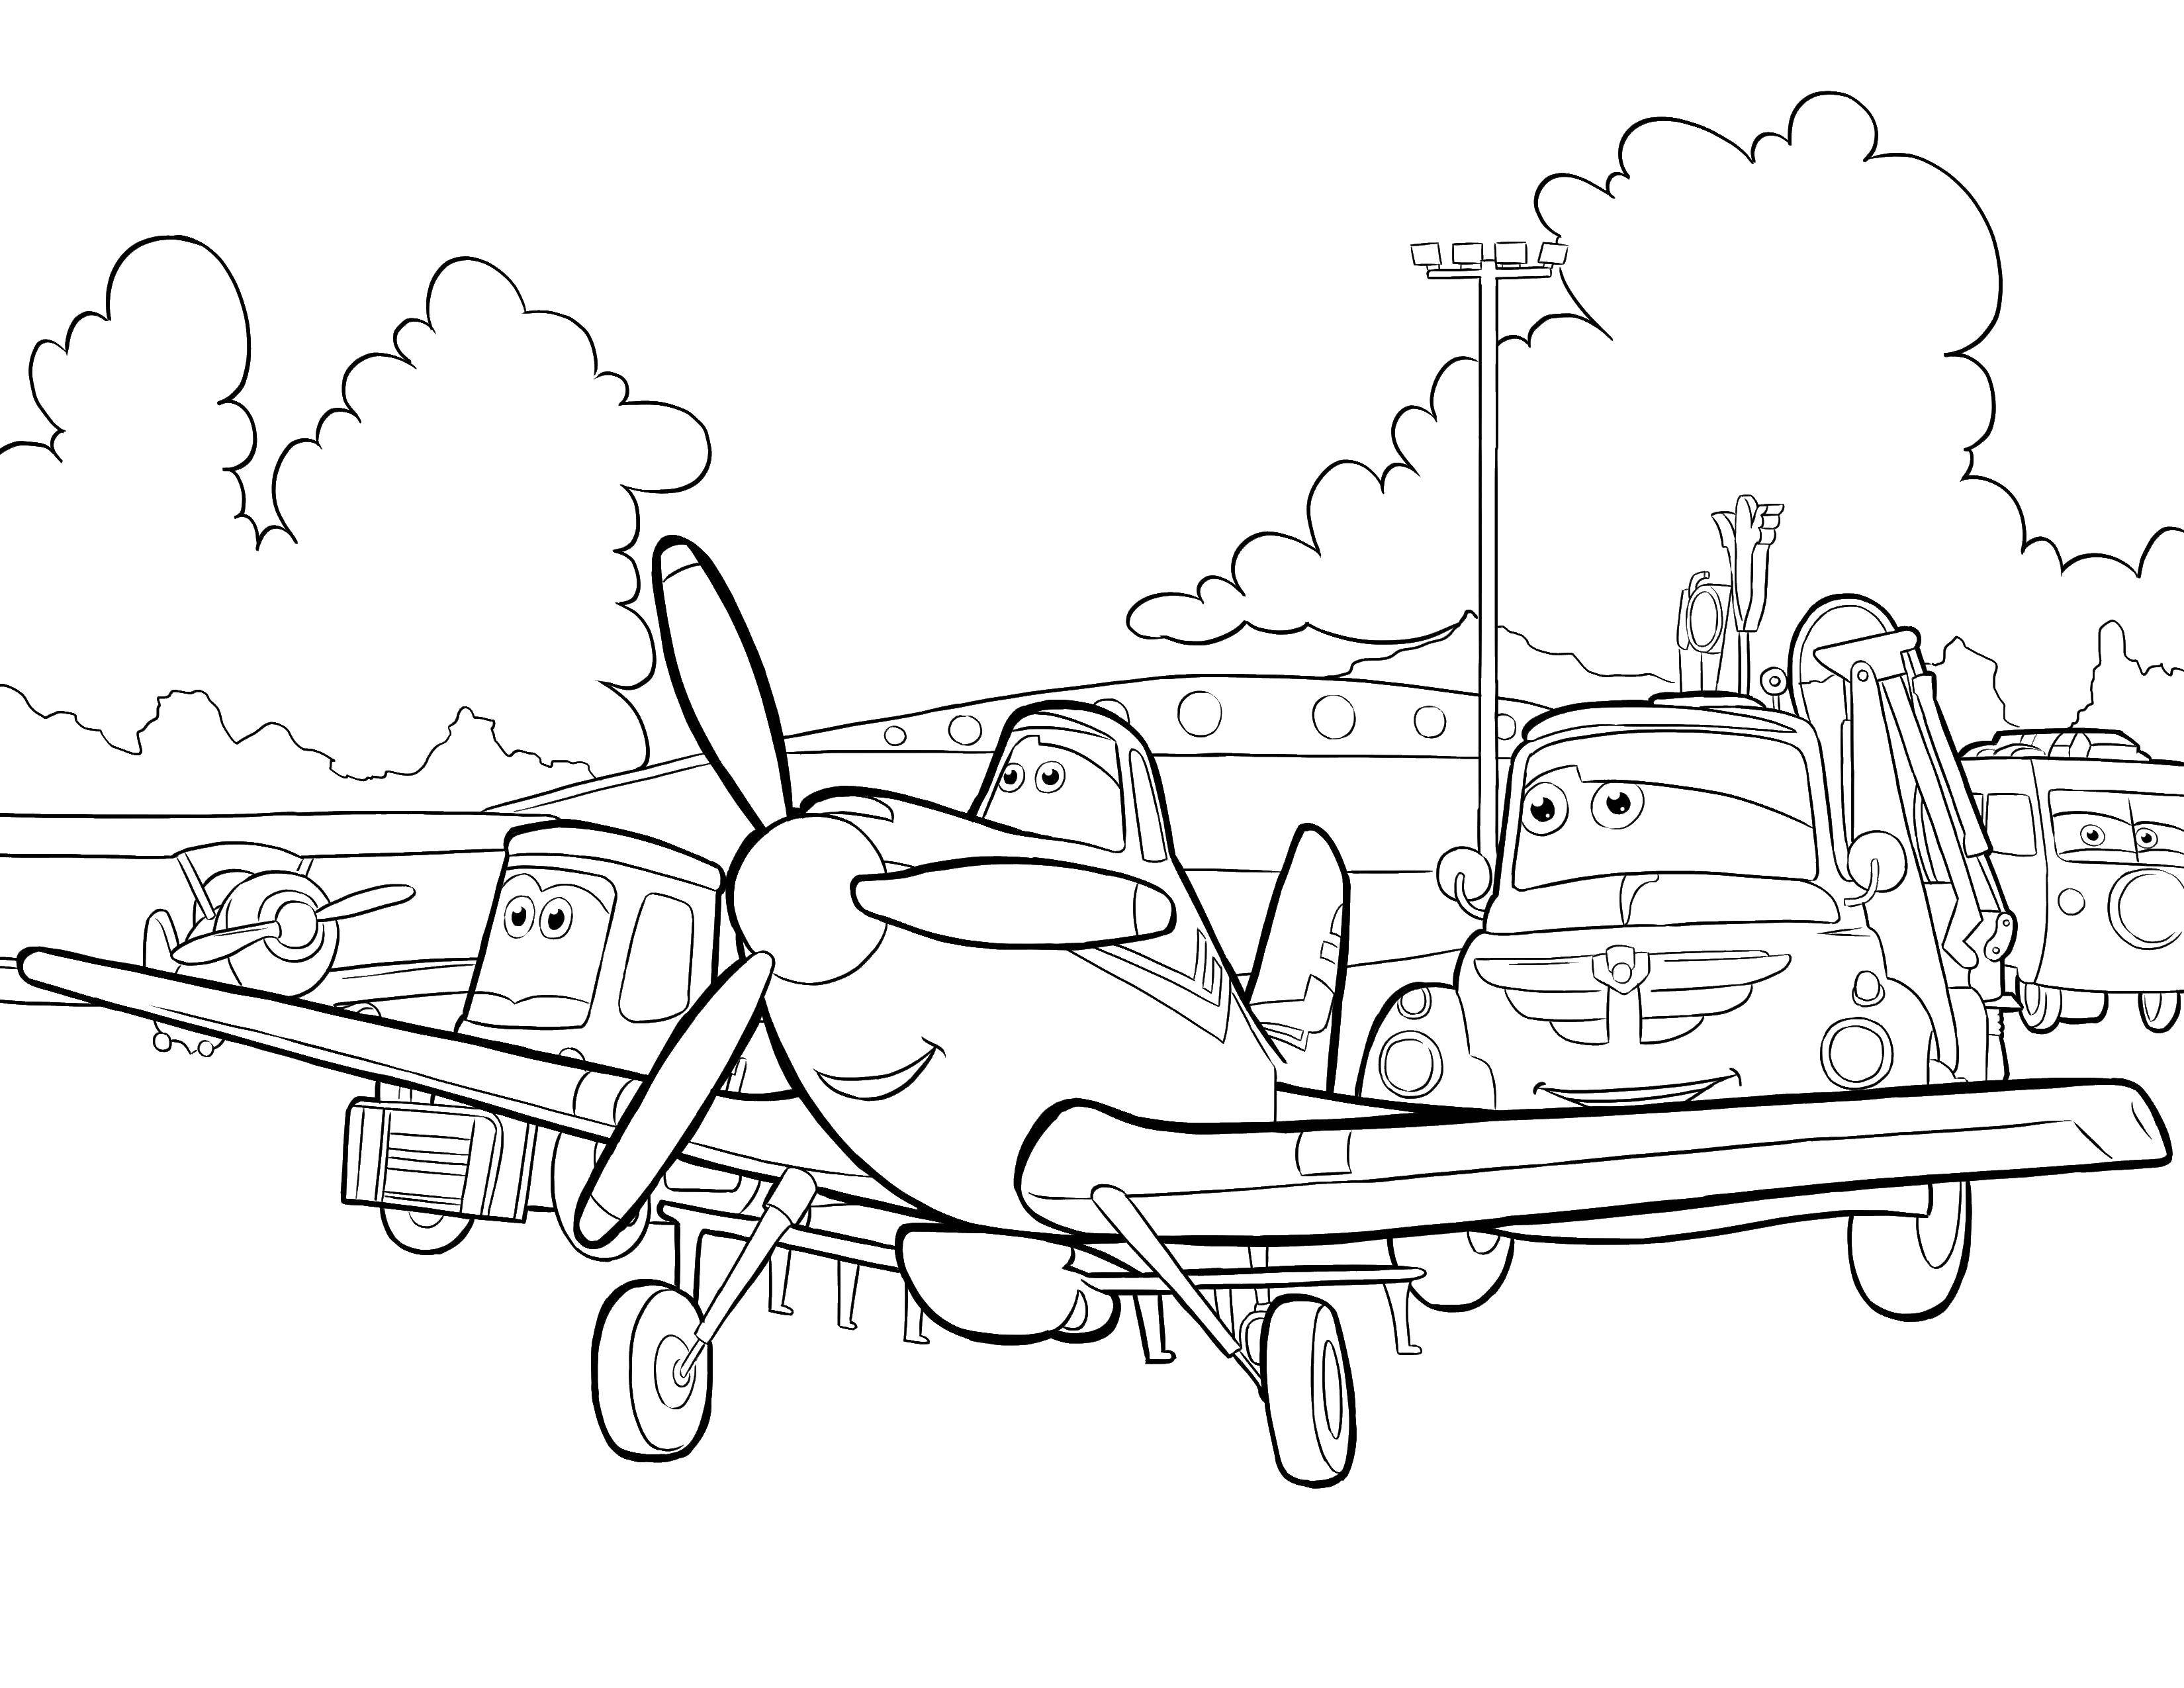 Coloring aircraft category the planes tags plane